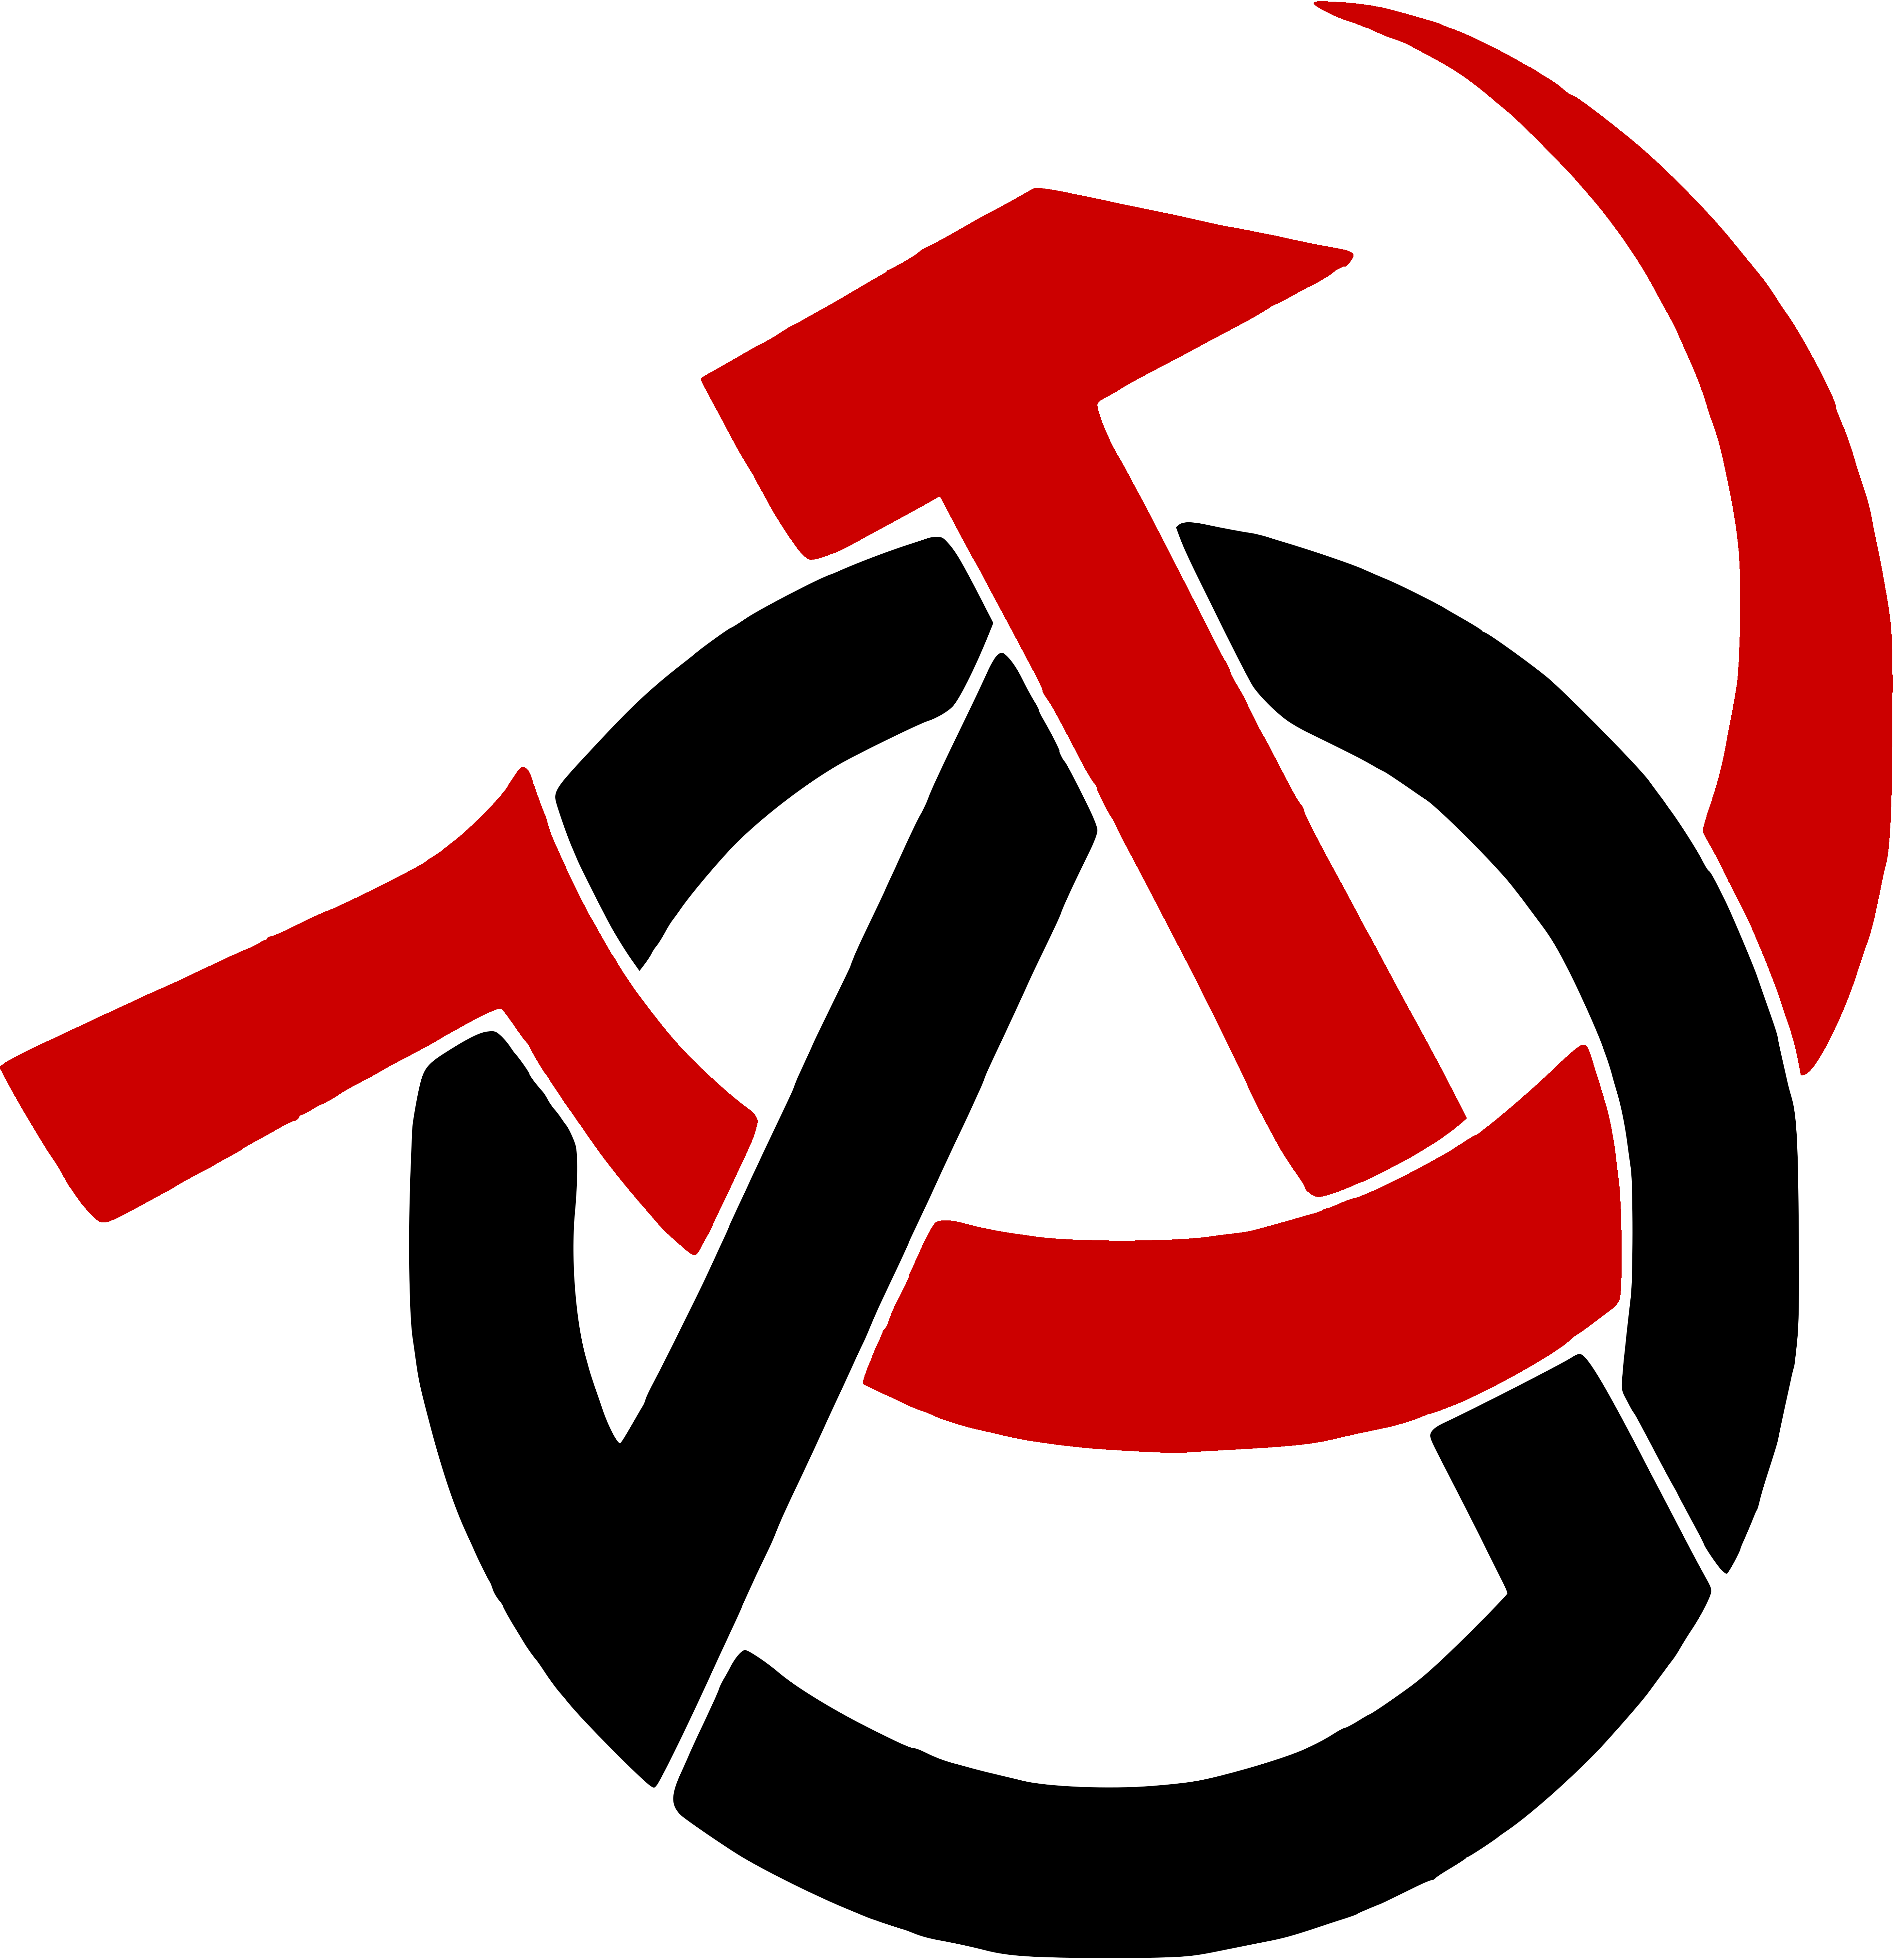 Anarcho-Communism Logo: A black A enclosed in a black circle with a red hammer and sickle replacing the middle and right side of the A